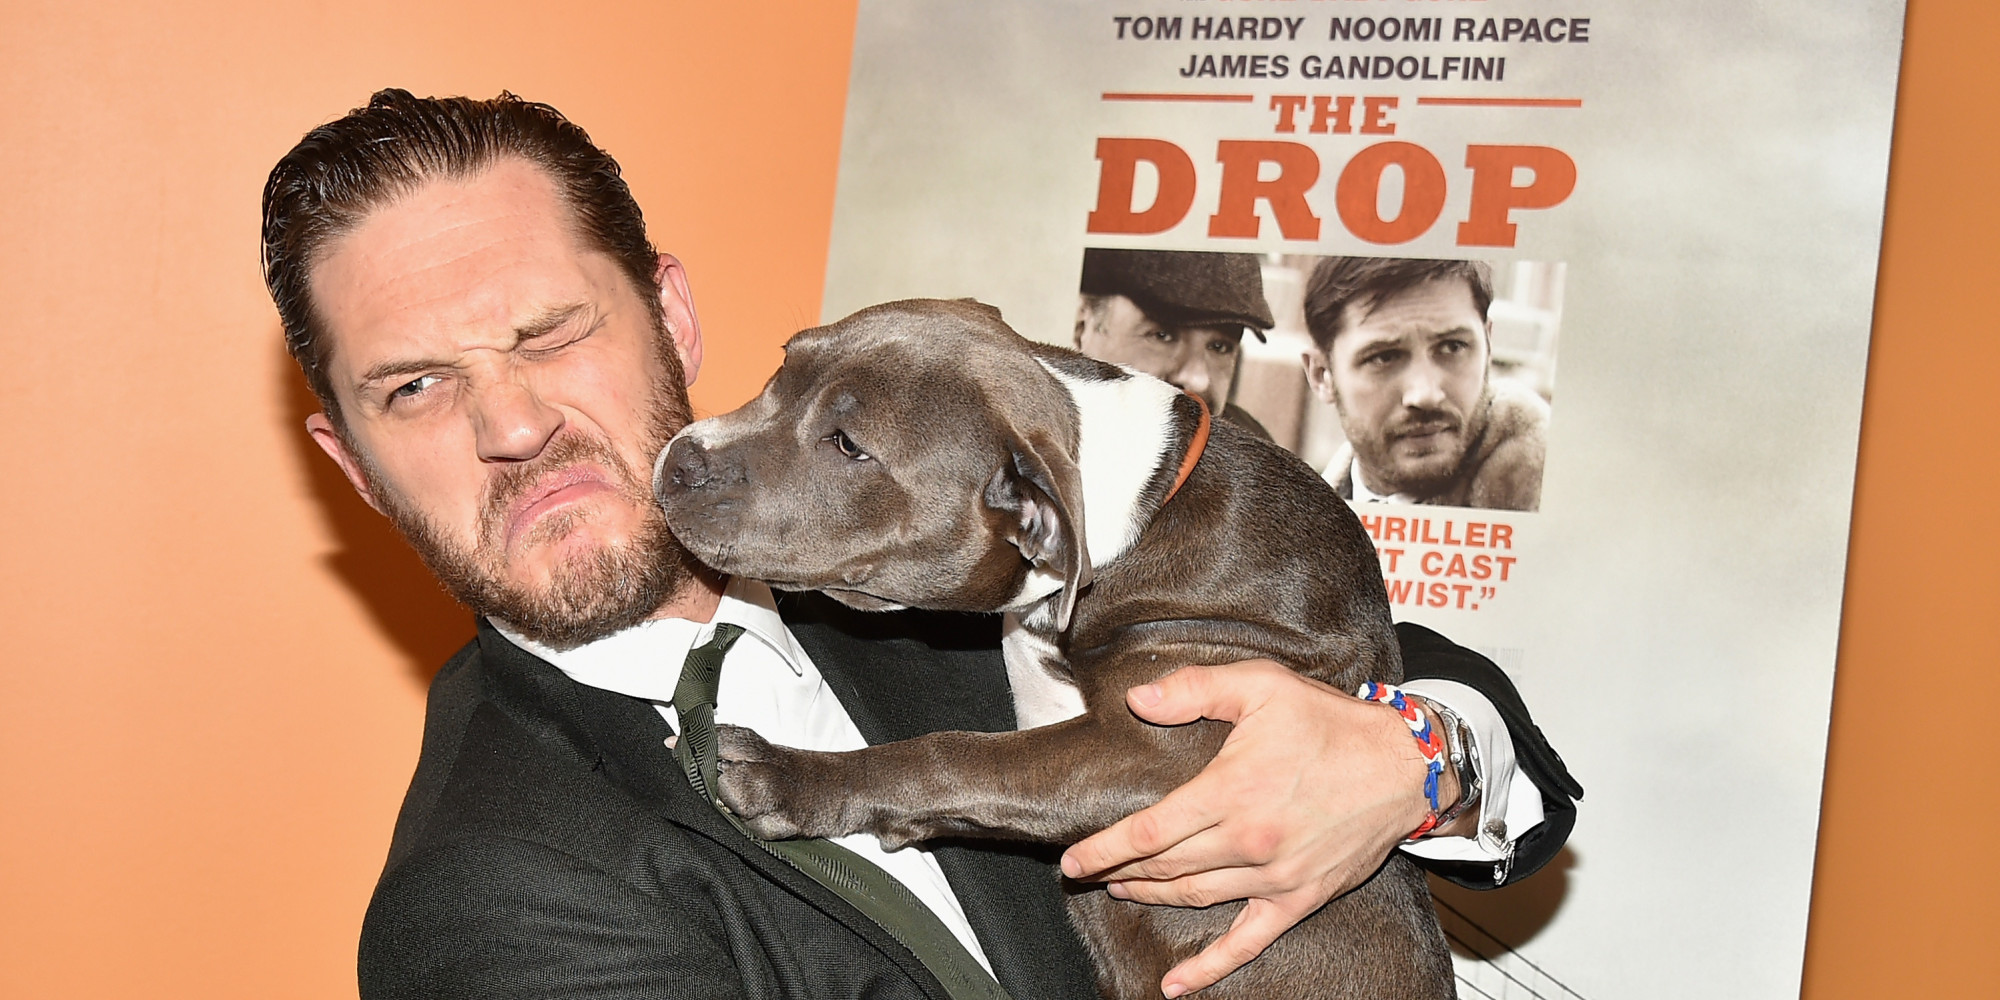 10 Pictures Of Tom Hardy Playing With A Dog At The